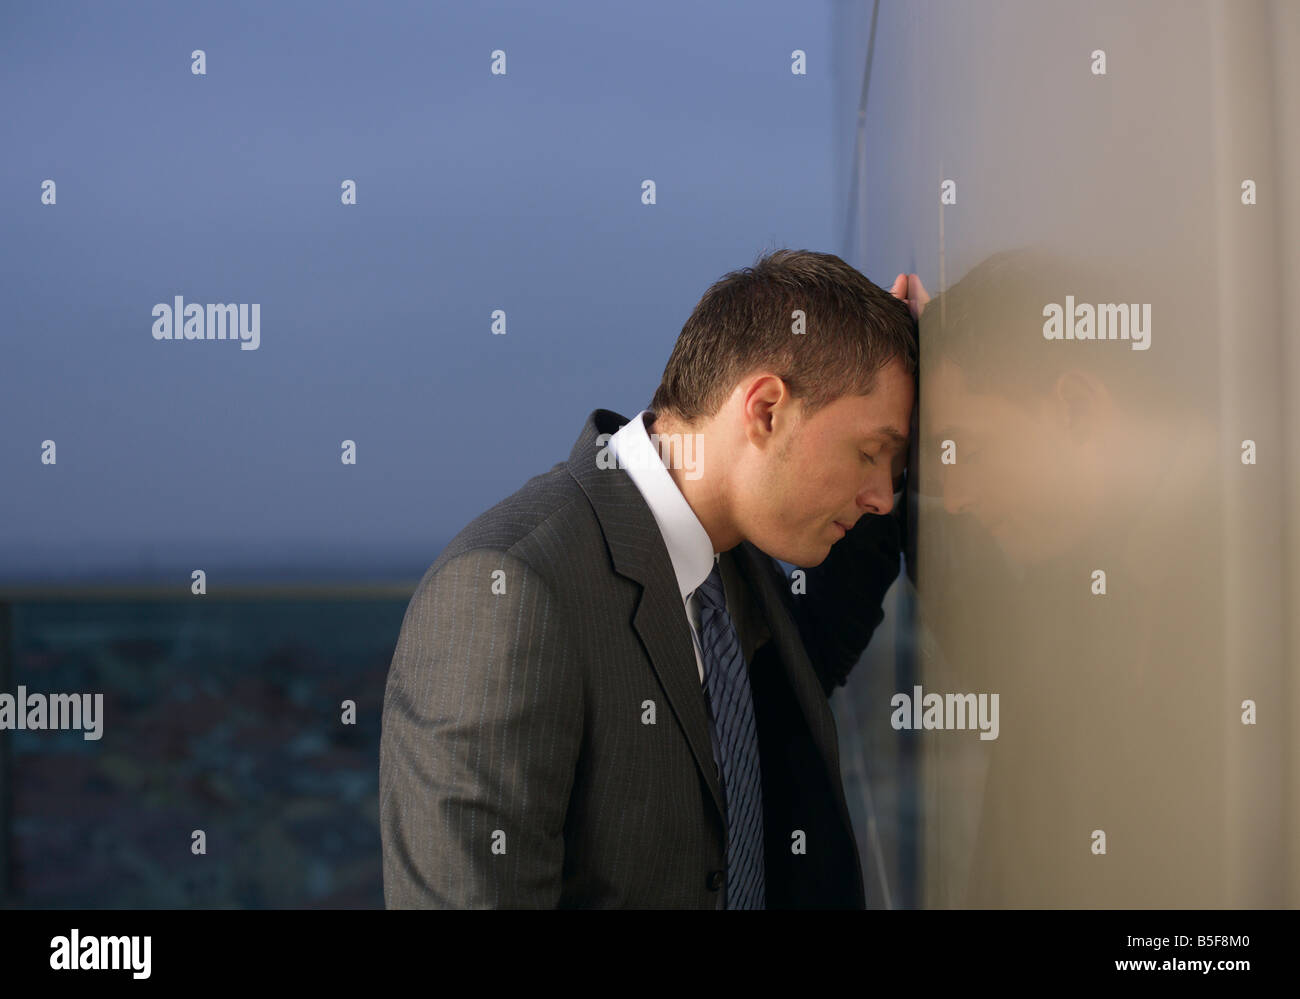 Despaired businessman leaning against wall - Stock Image